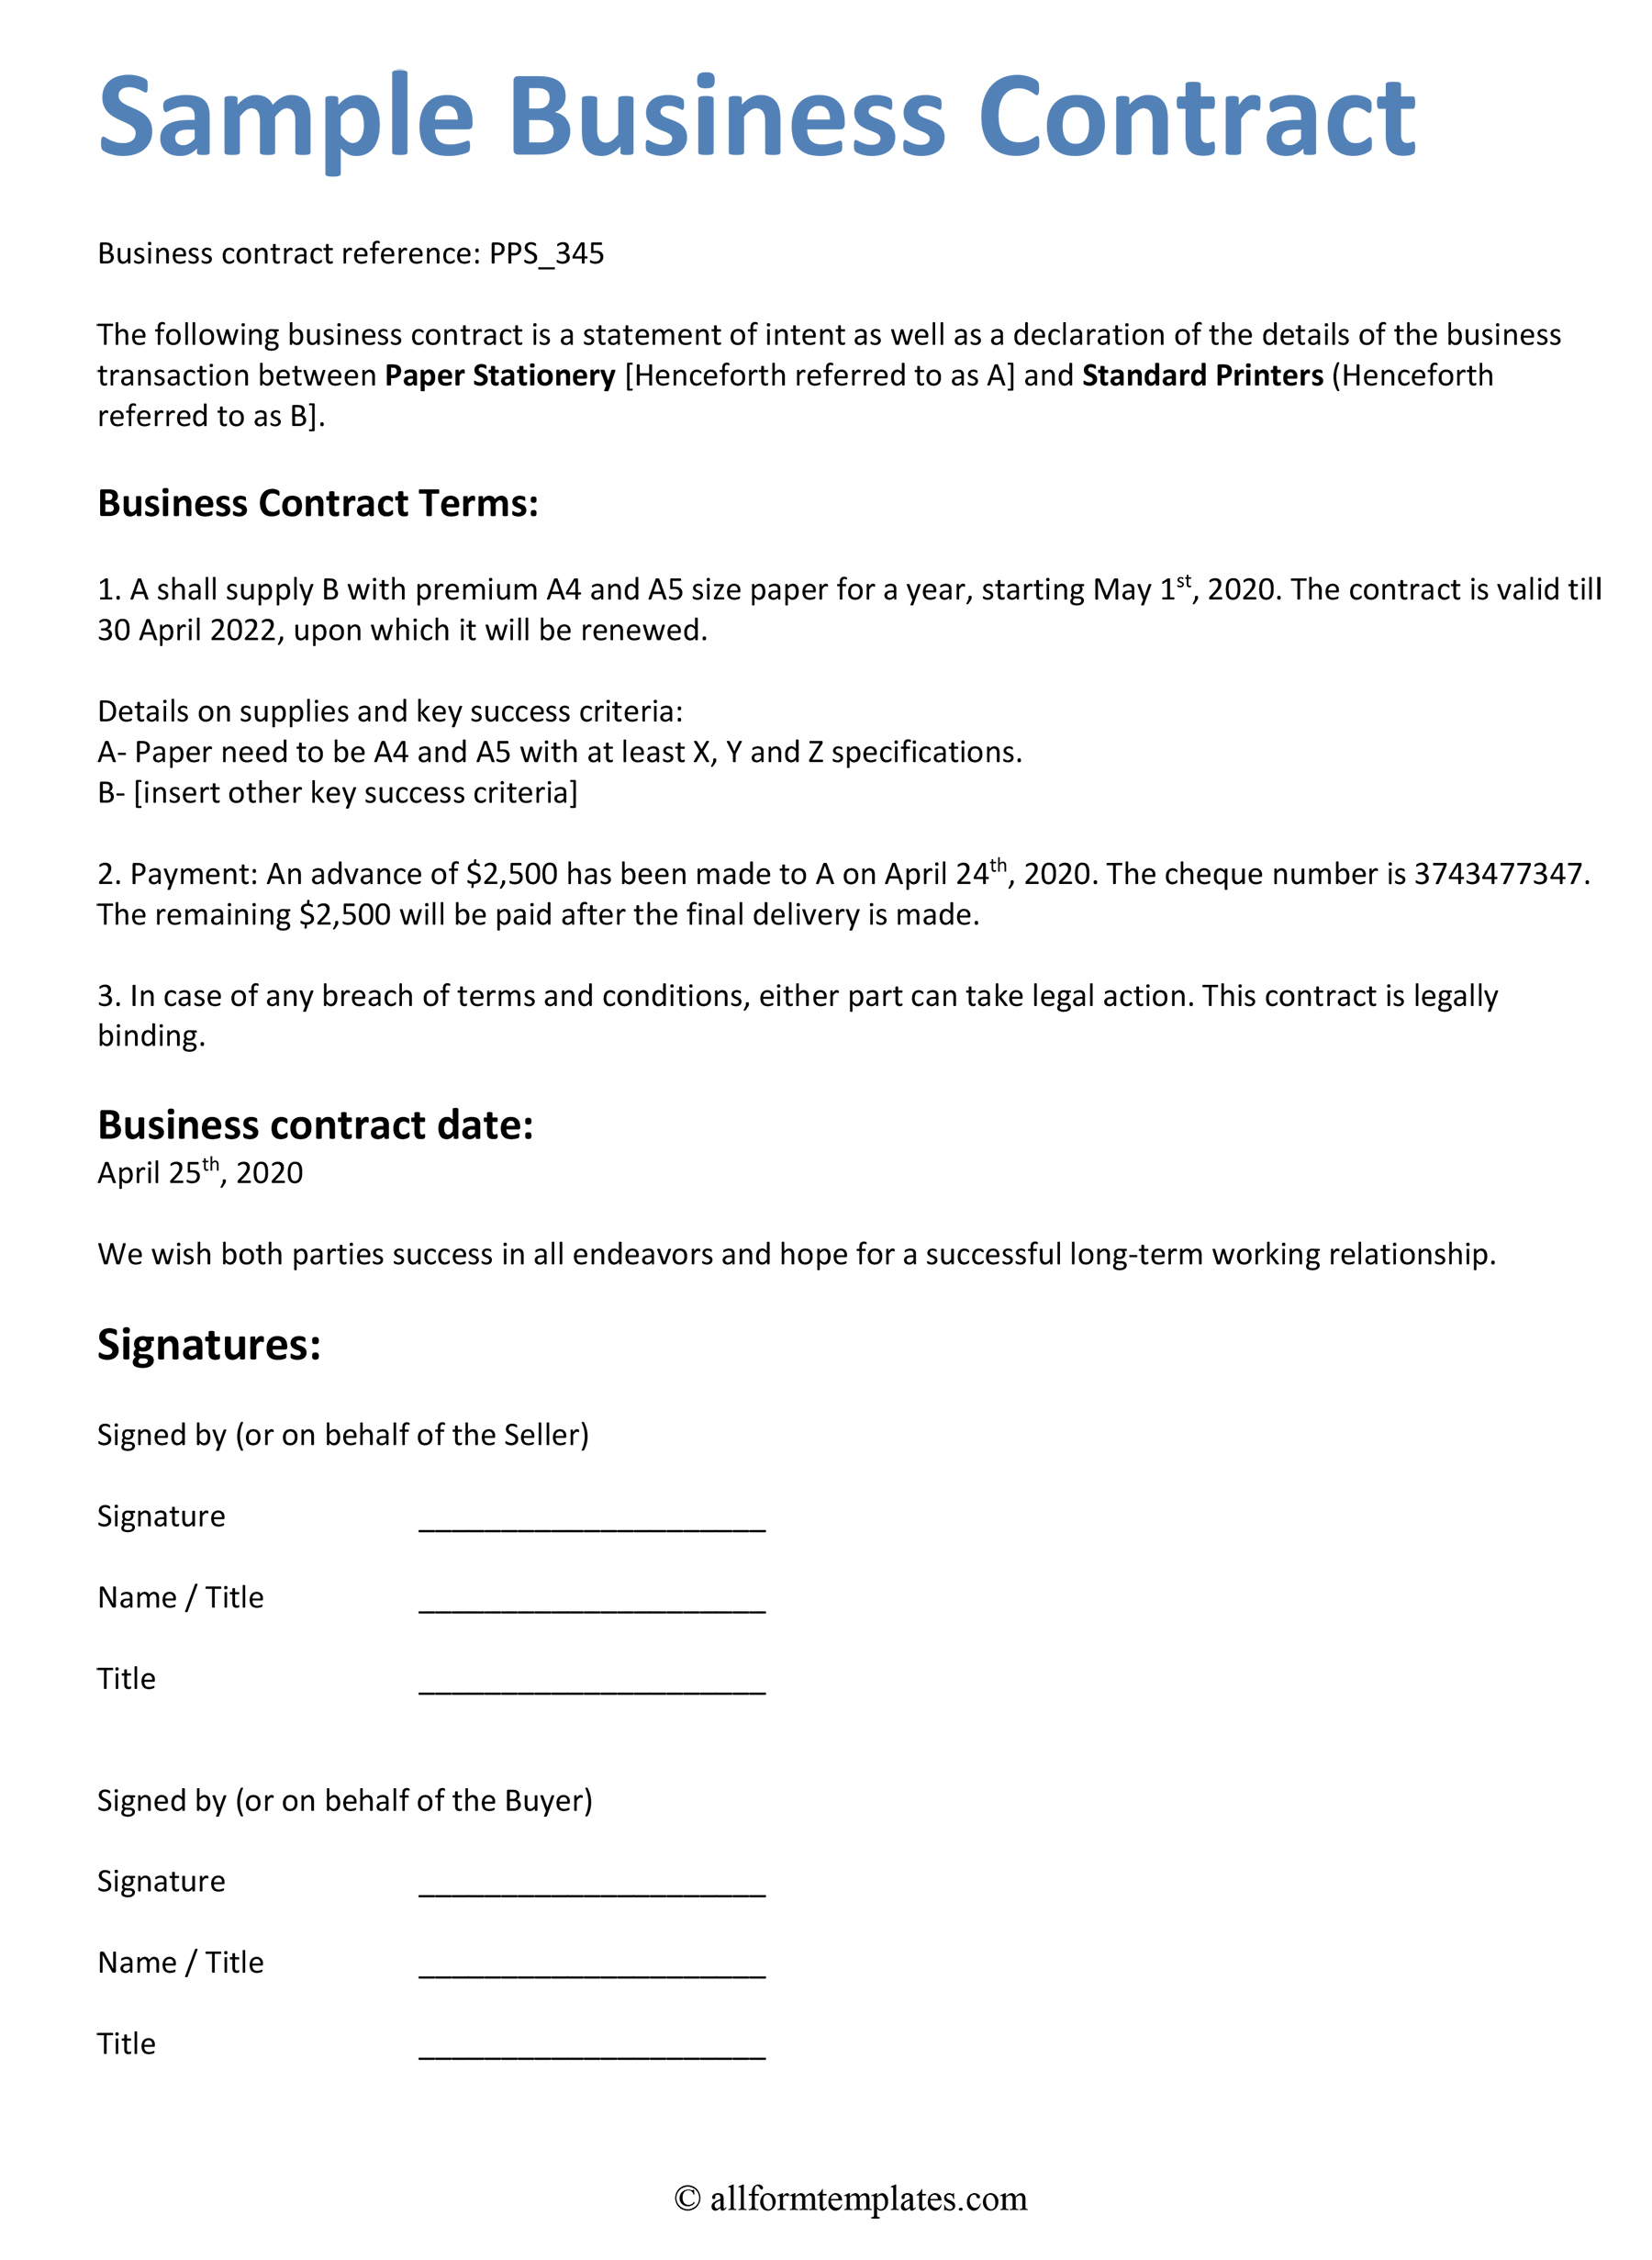 Contract-Template-Business-02-HD